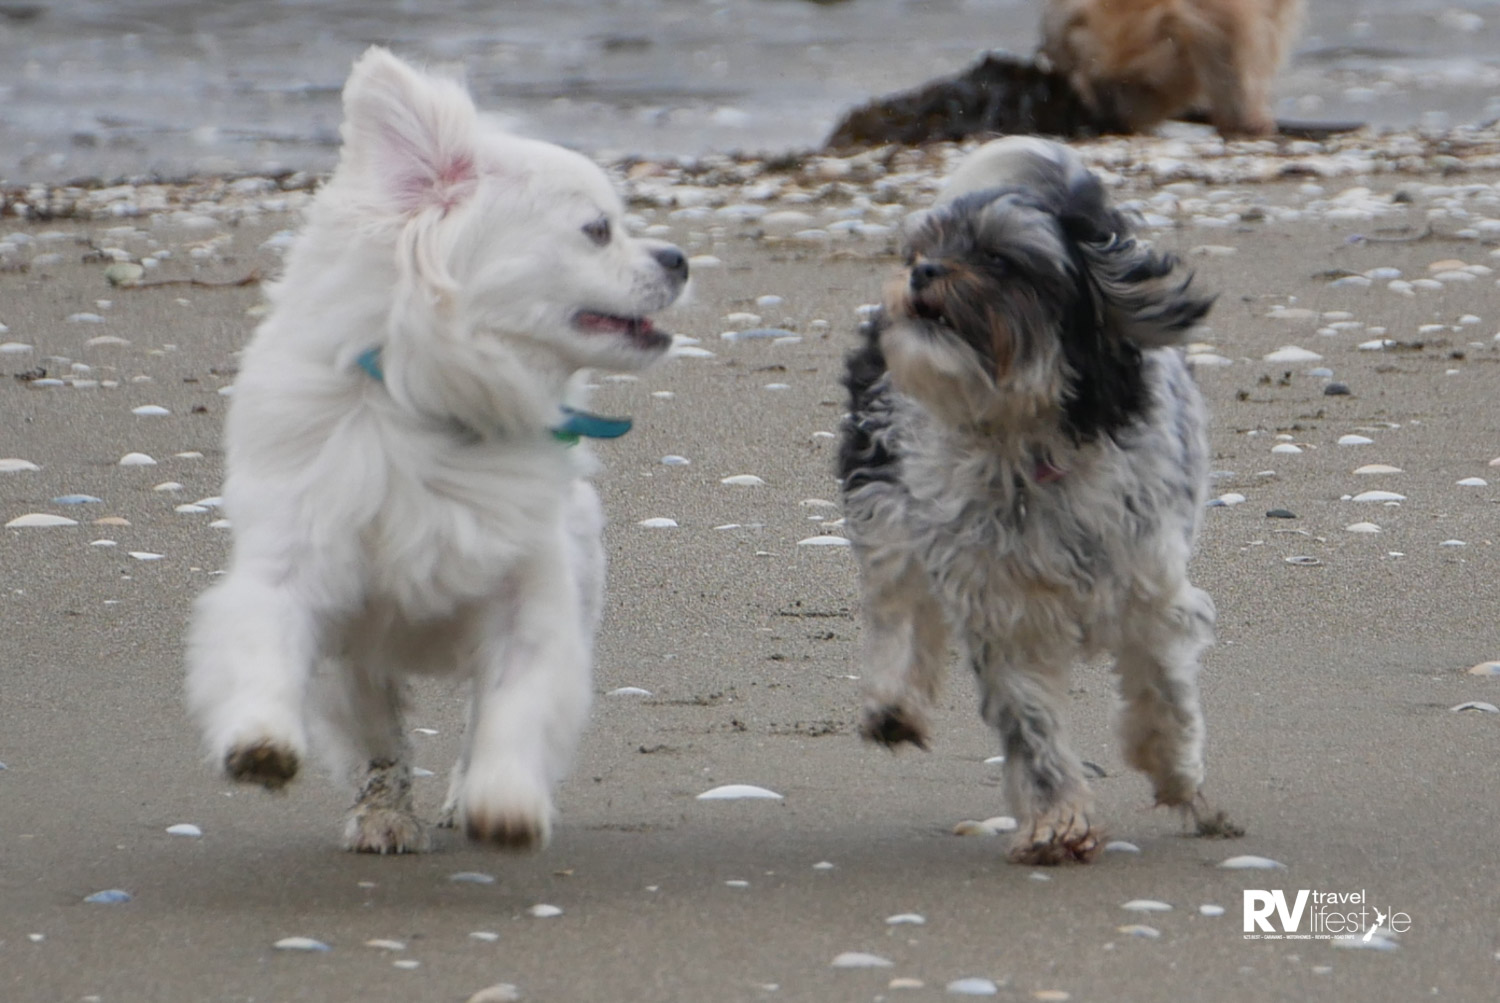 That's me and Lox having a great time together on the beach